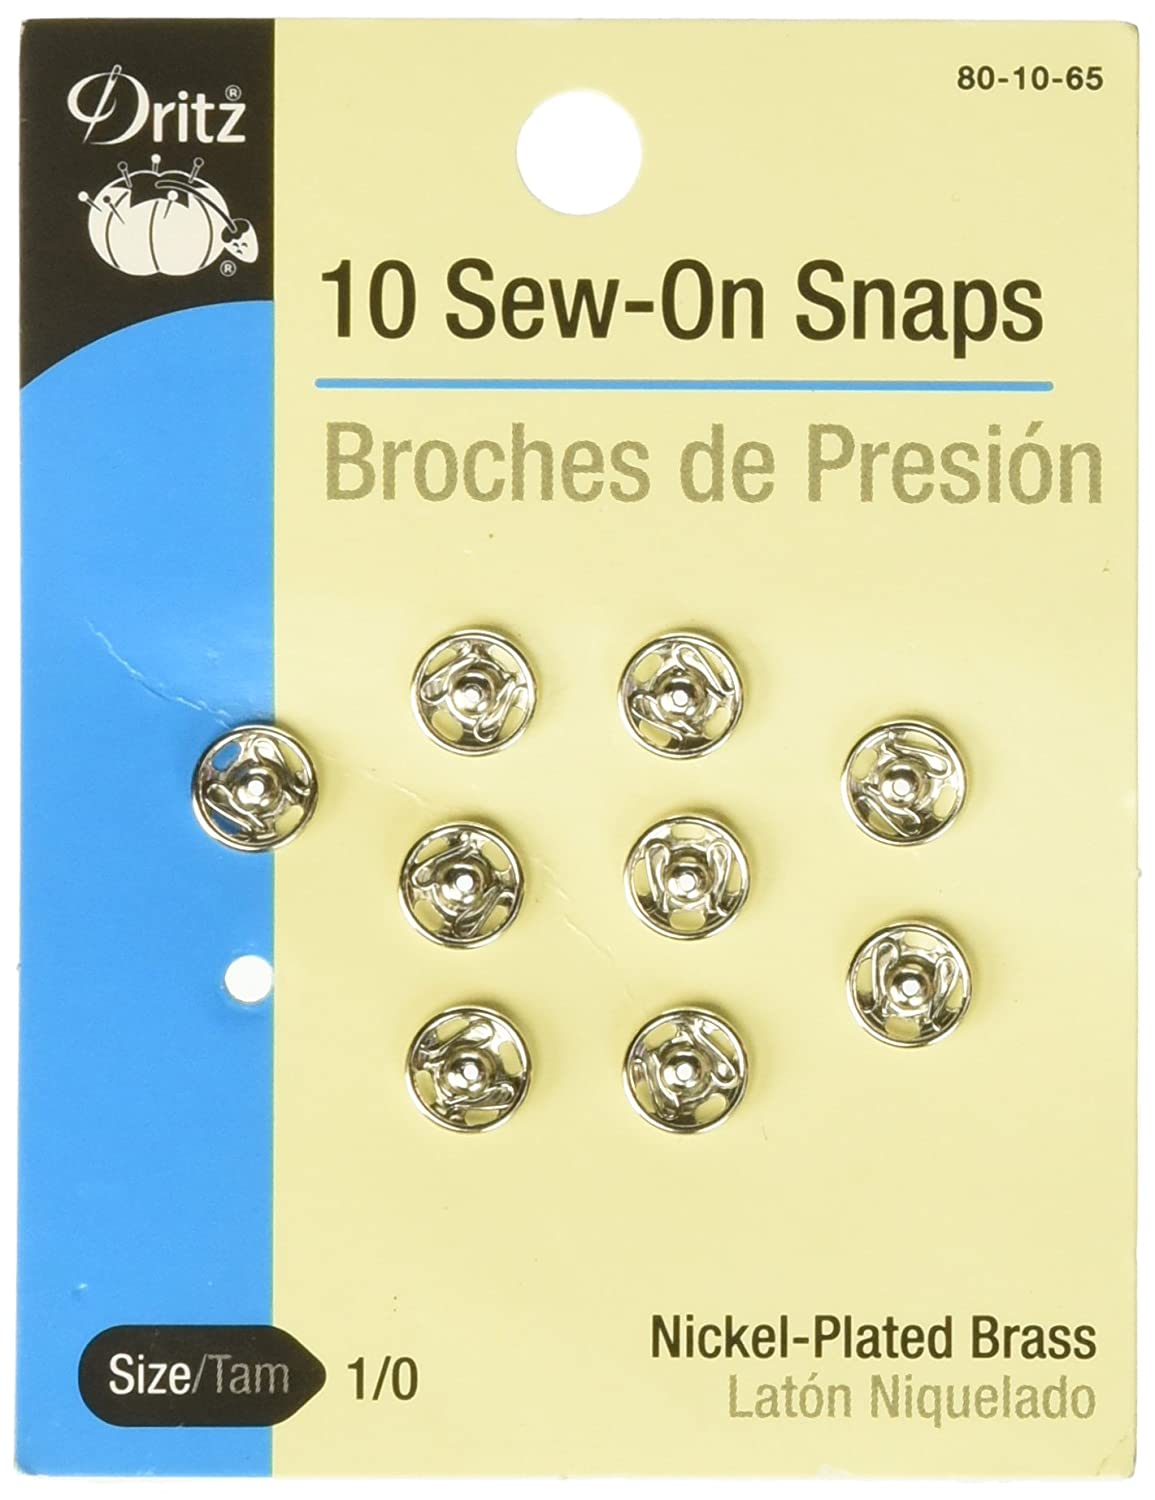 Dritz 80-10-65 Sew-On Snaps Size 1//0 10-Count Nickel-Plated Brass